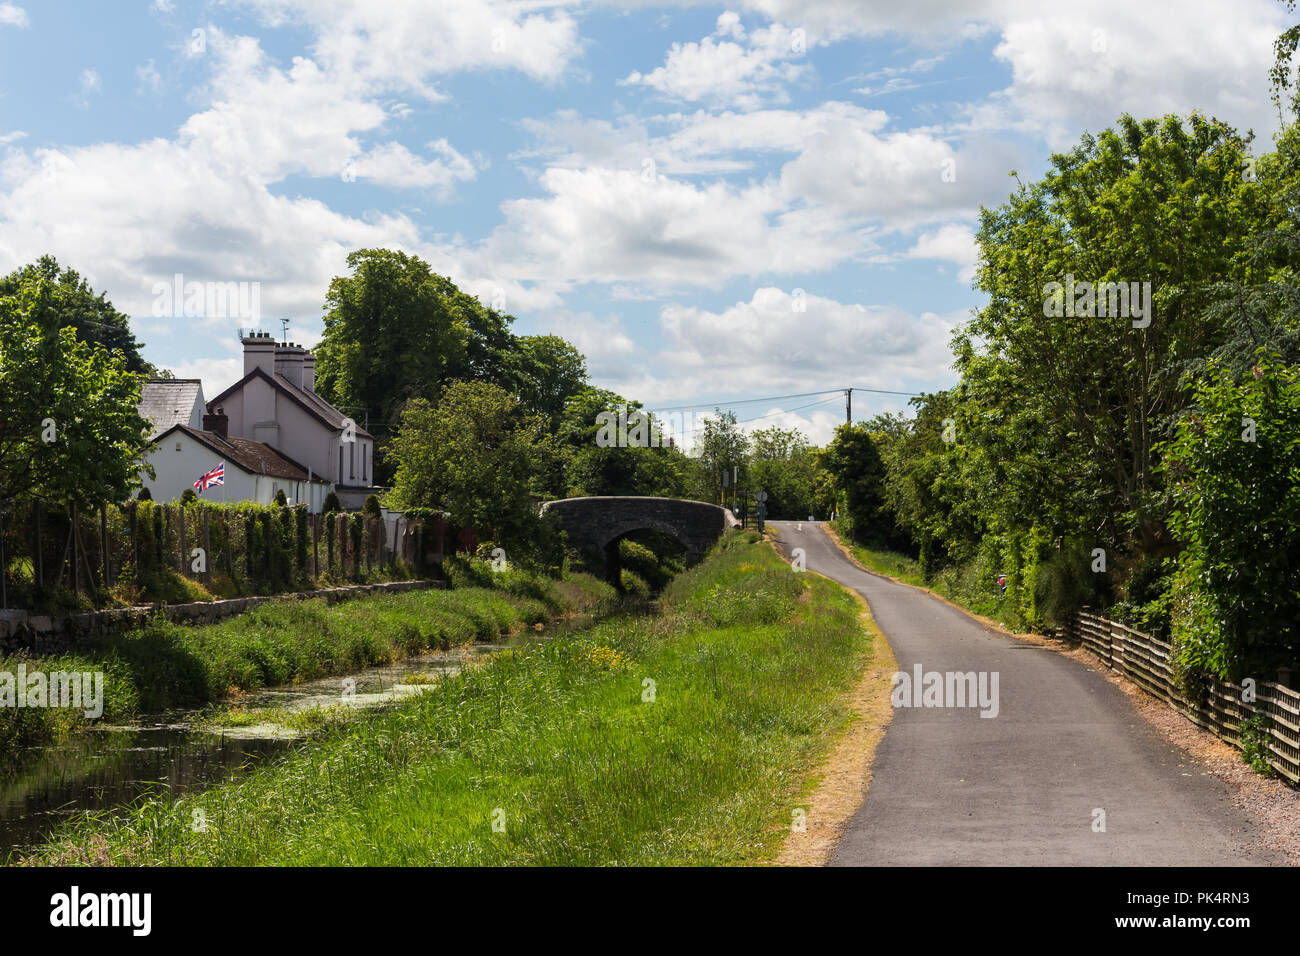 Newry Canal and towpath at Scarva, County Down, N.Ireland. - Stock Image